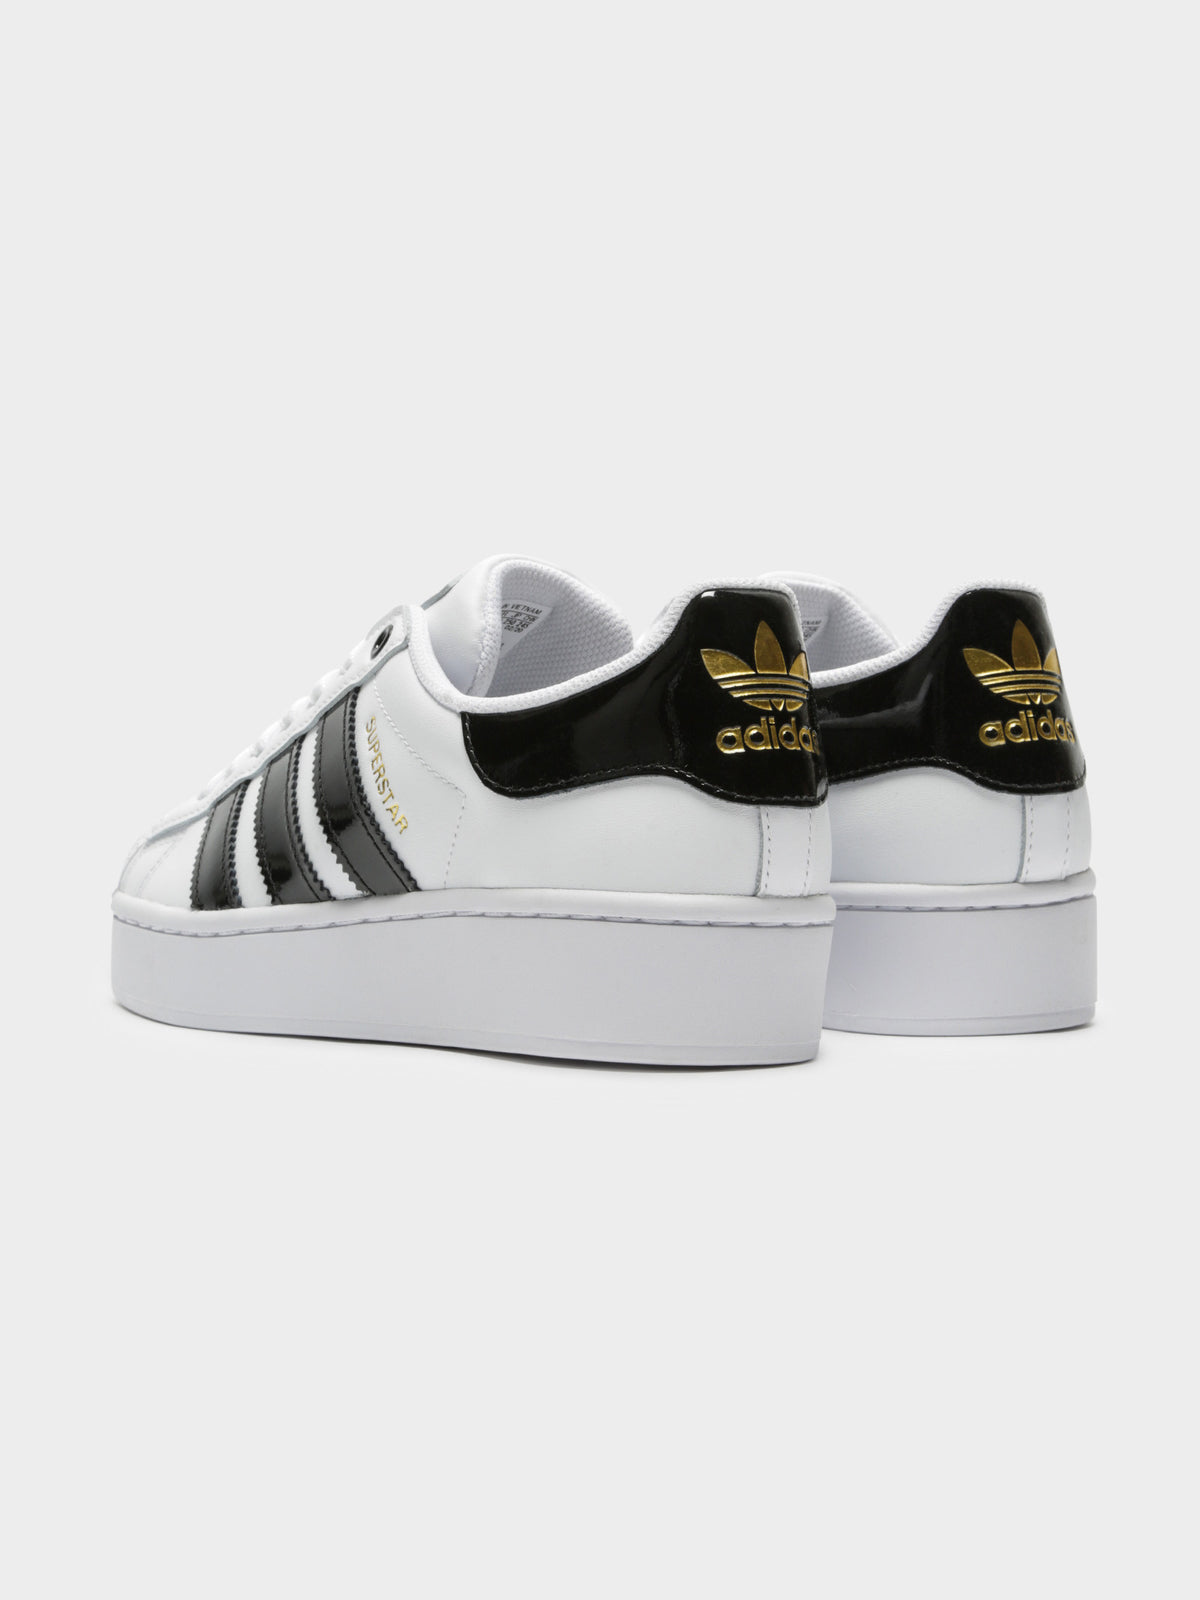 Womens Superstar Bold Sneakers in Black White & Gold